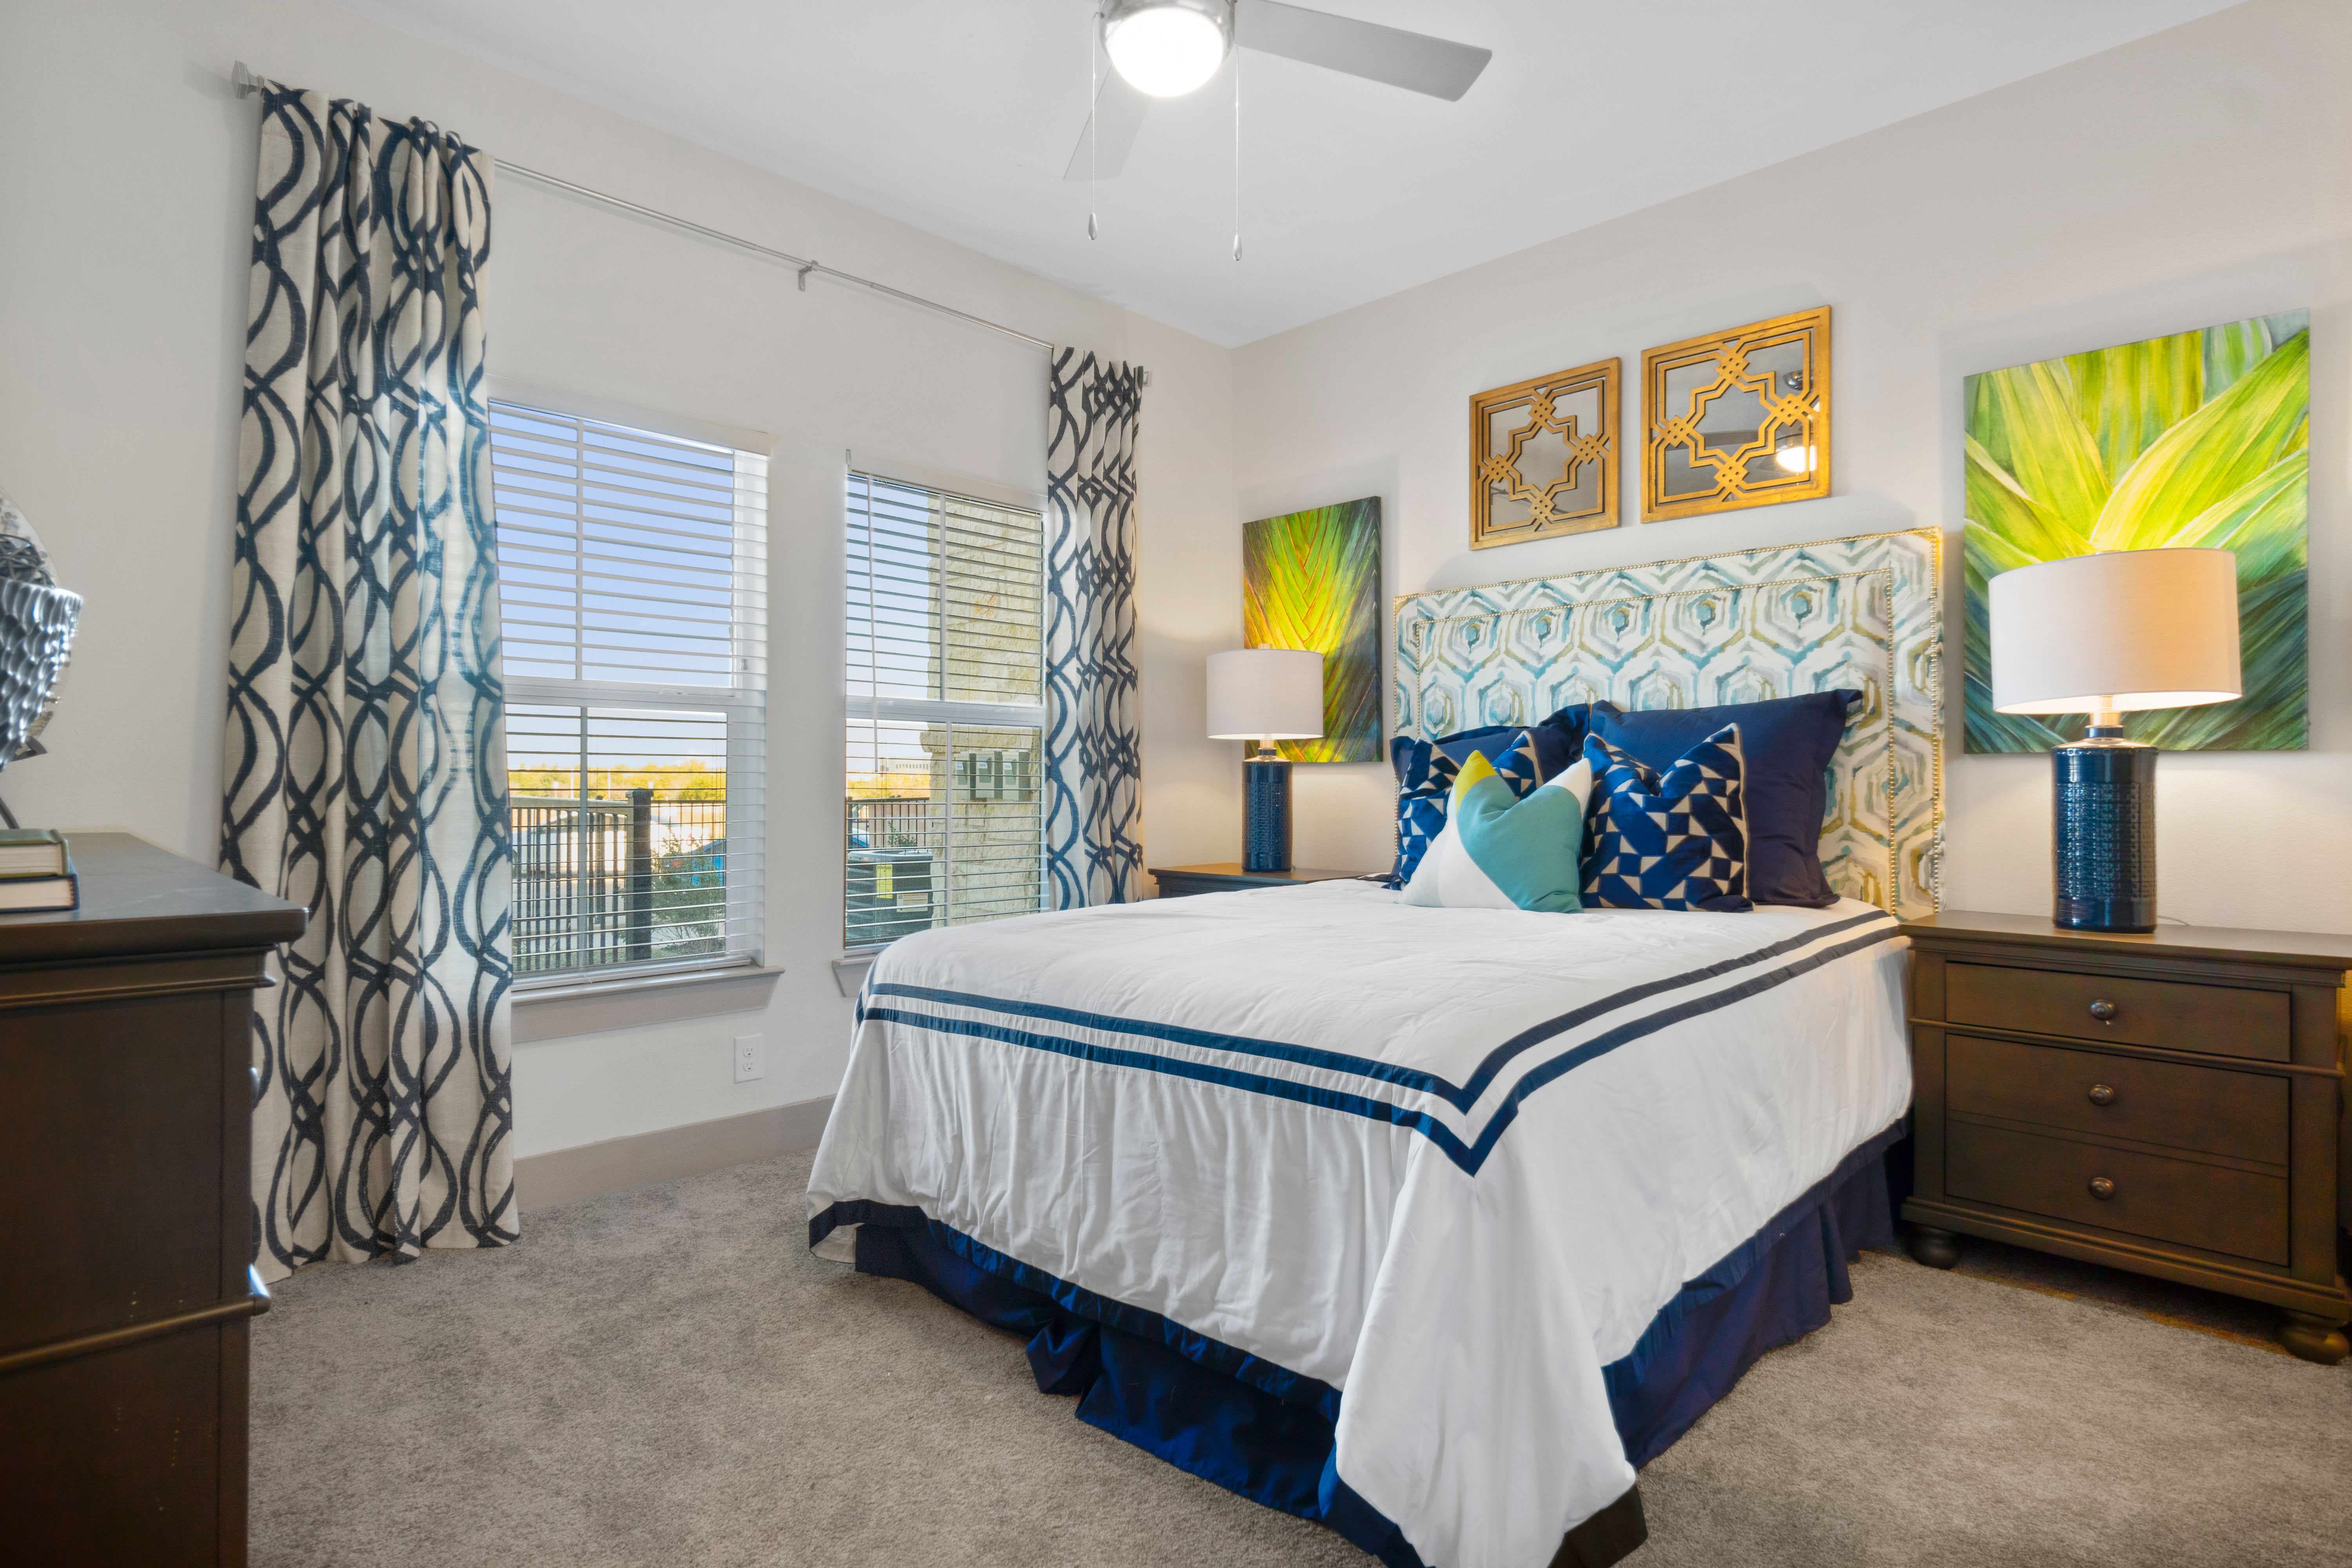 Bedroom with a large window at McCarty Commons in San Marcos, Texas